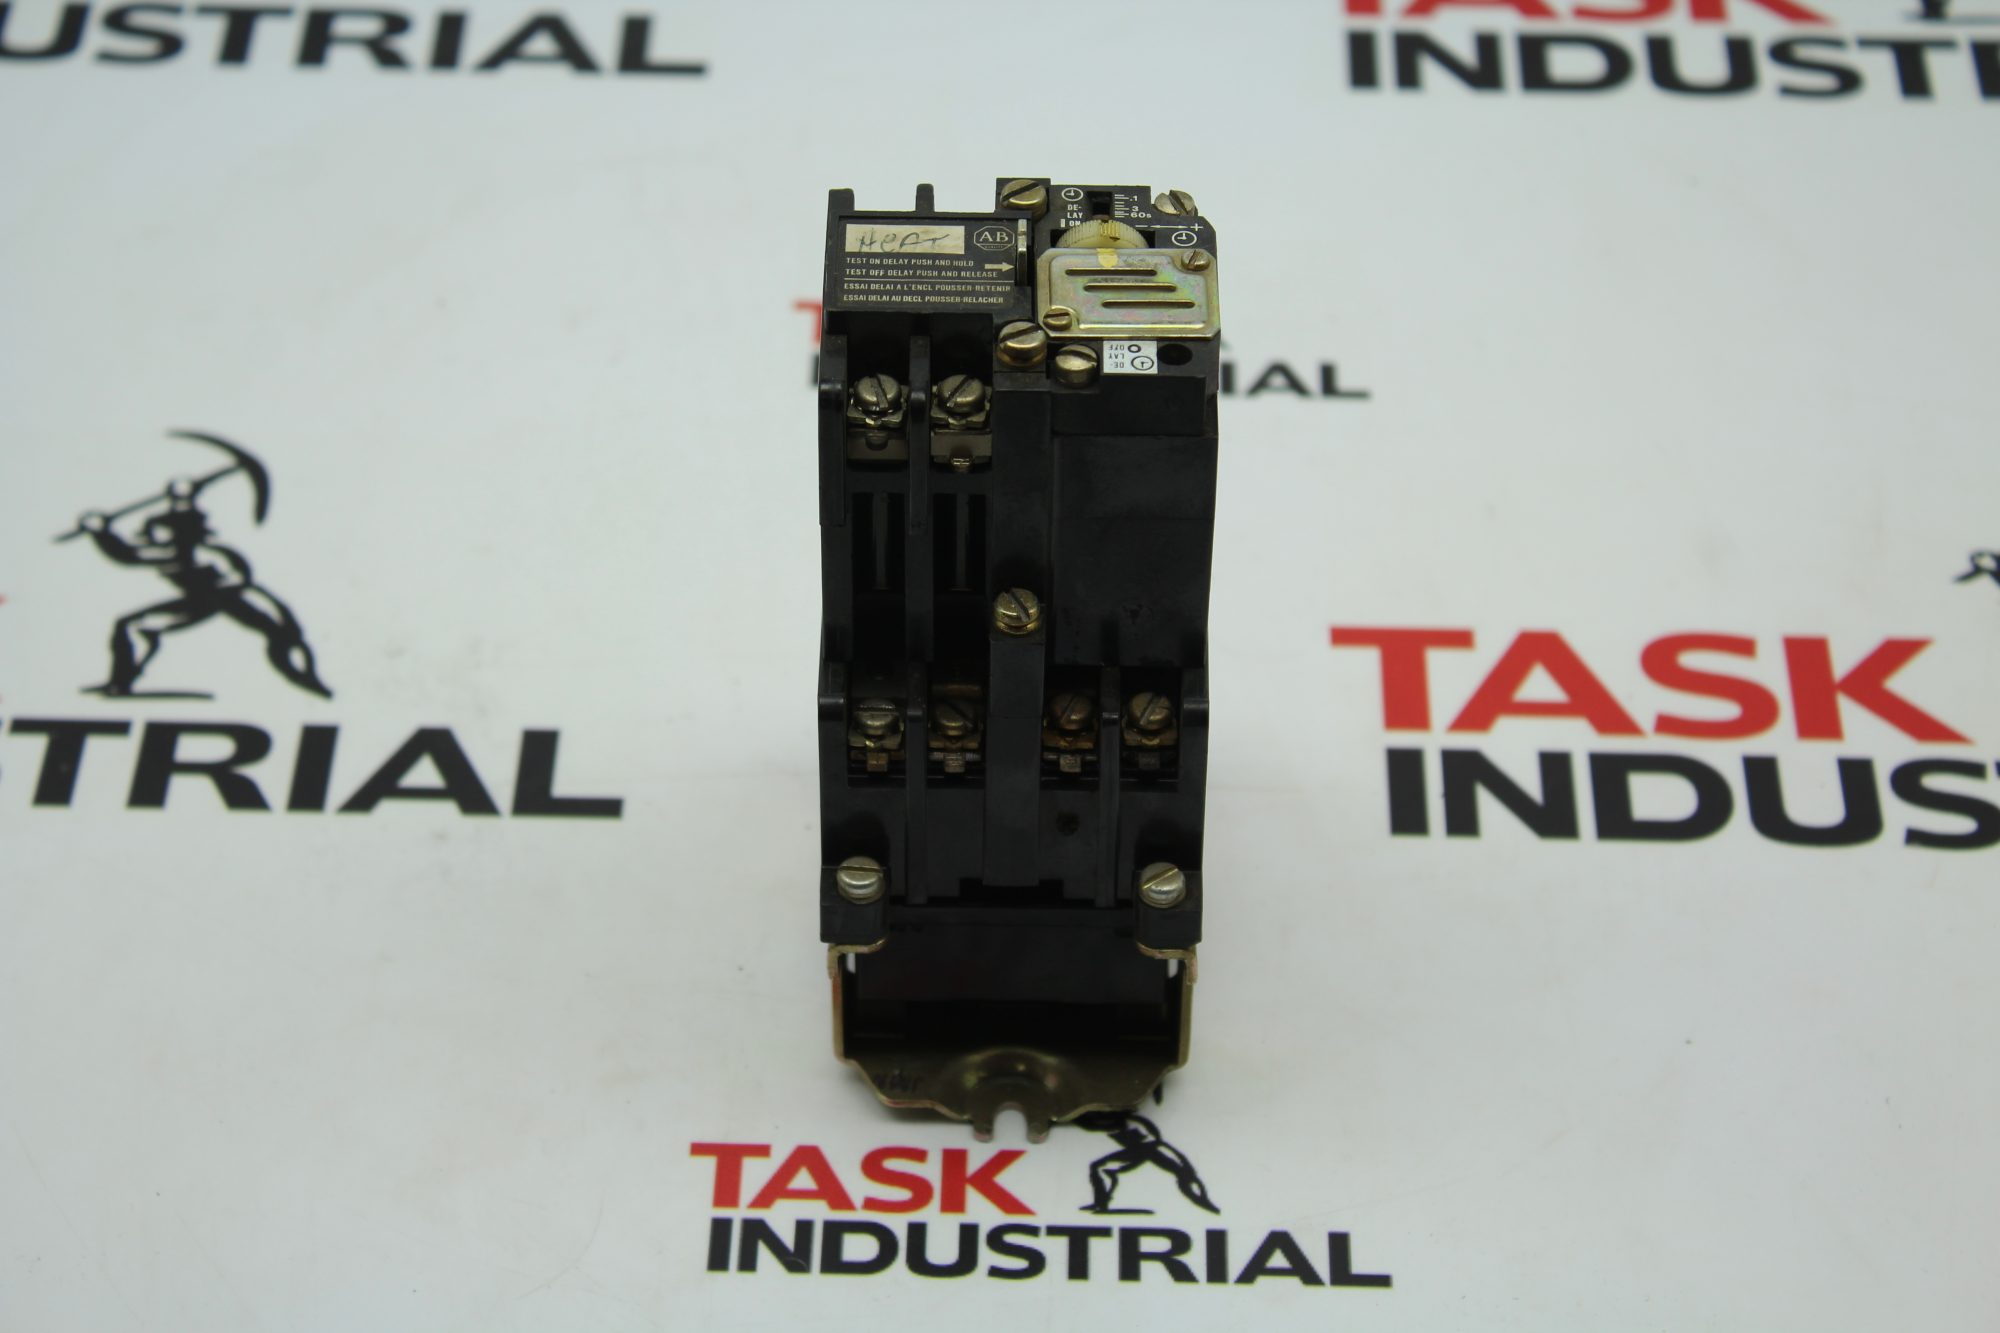 Allen-Bradley CAT No. 700-N200A1 Series C Relay.